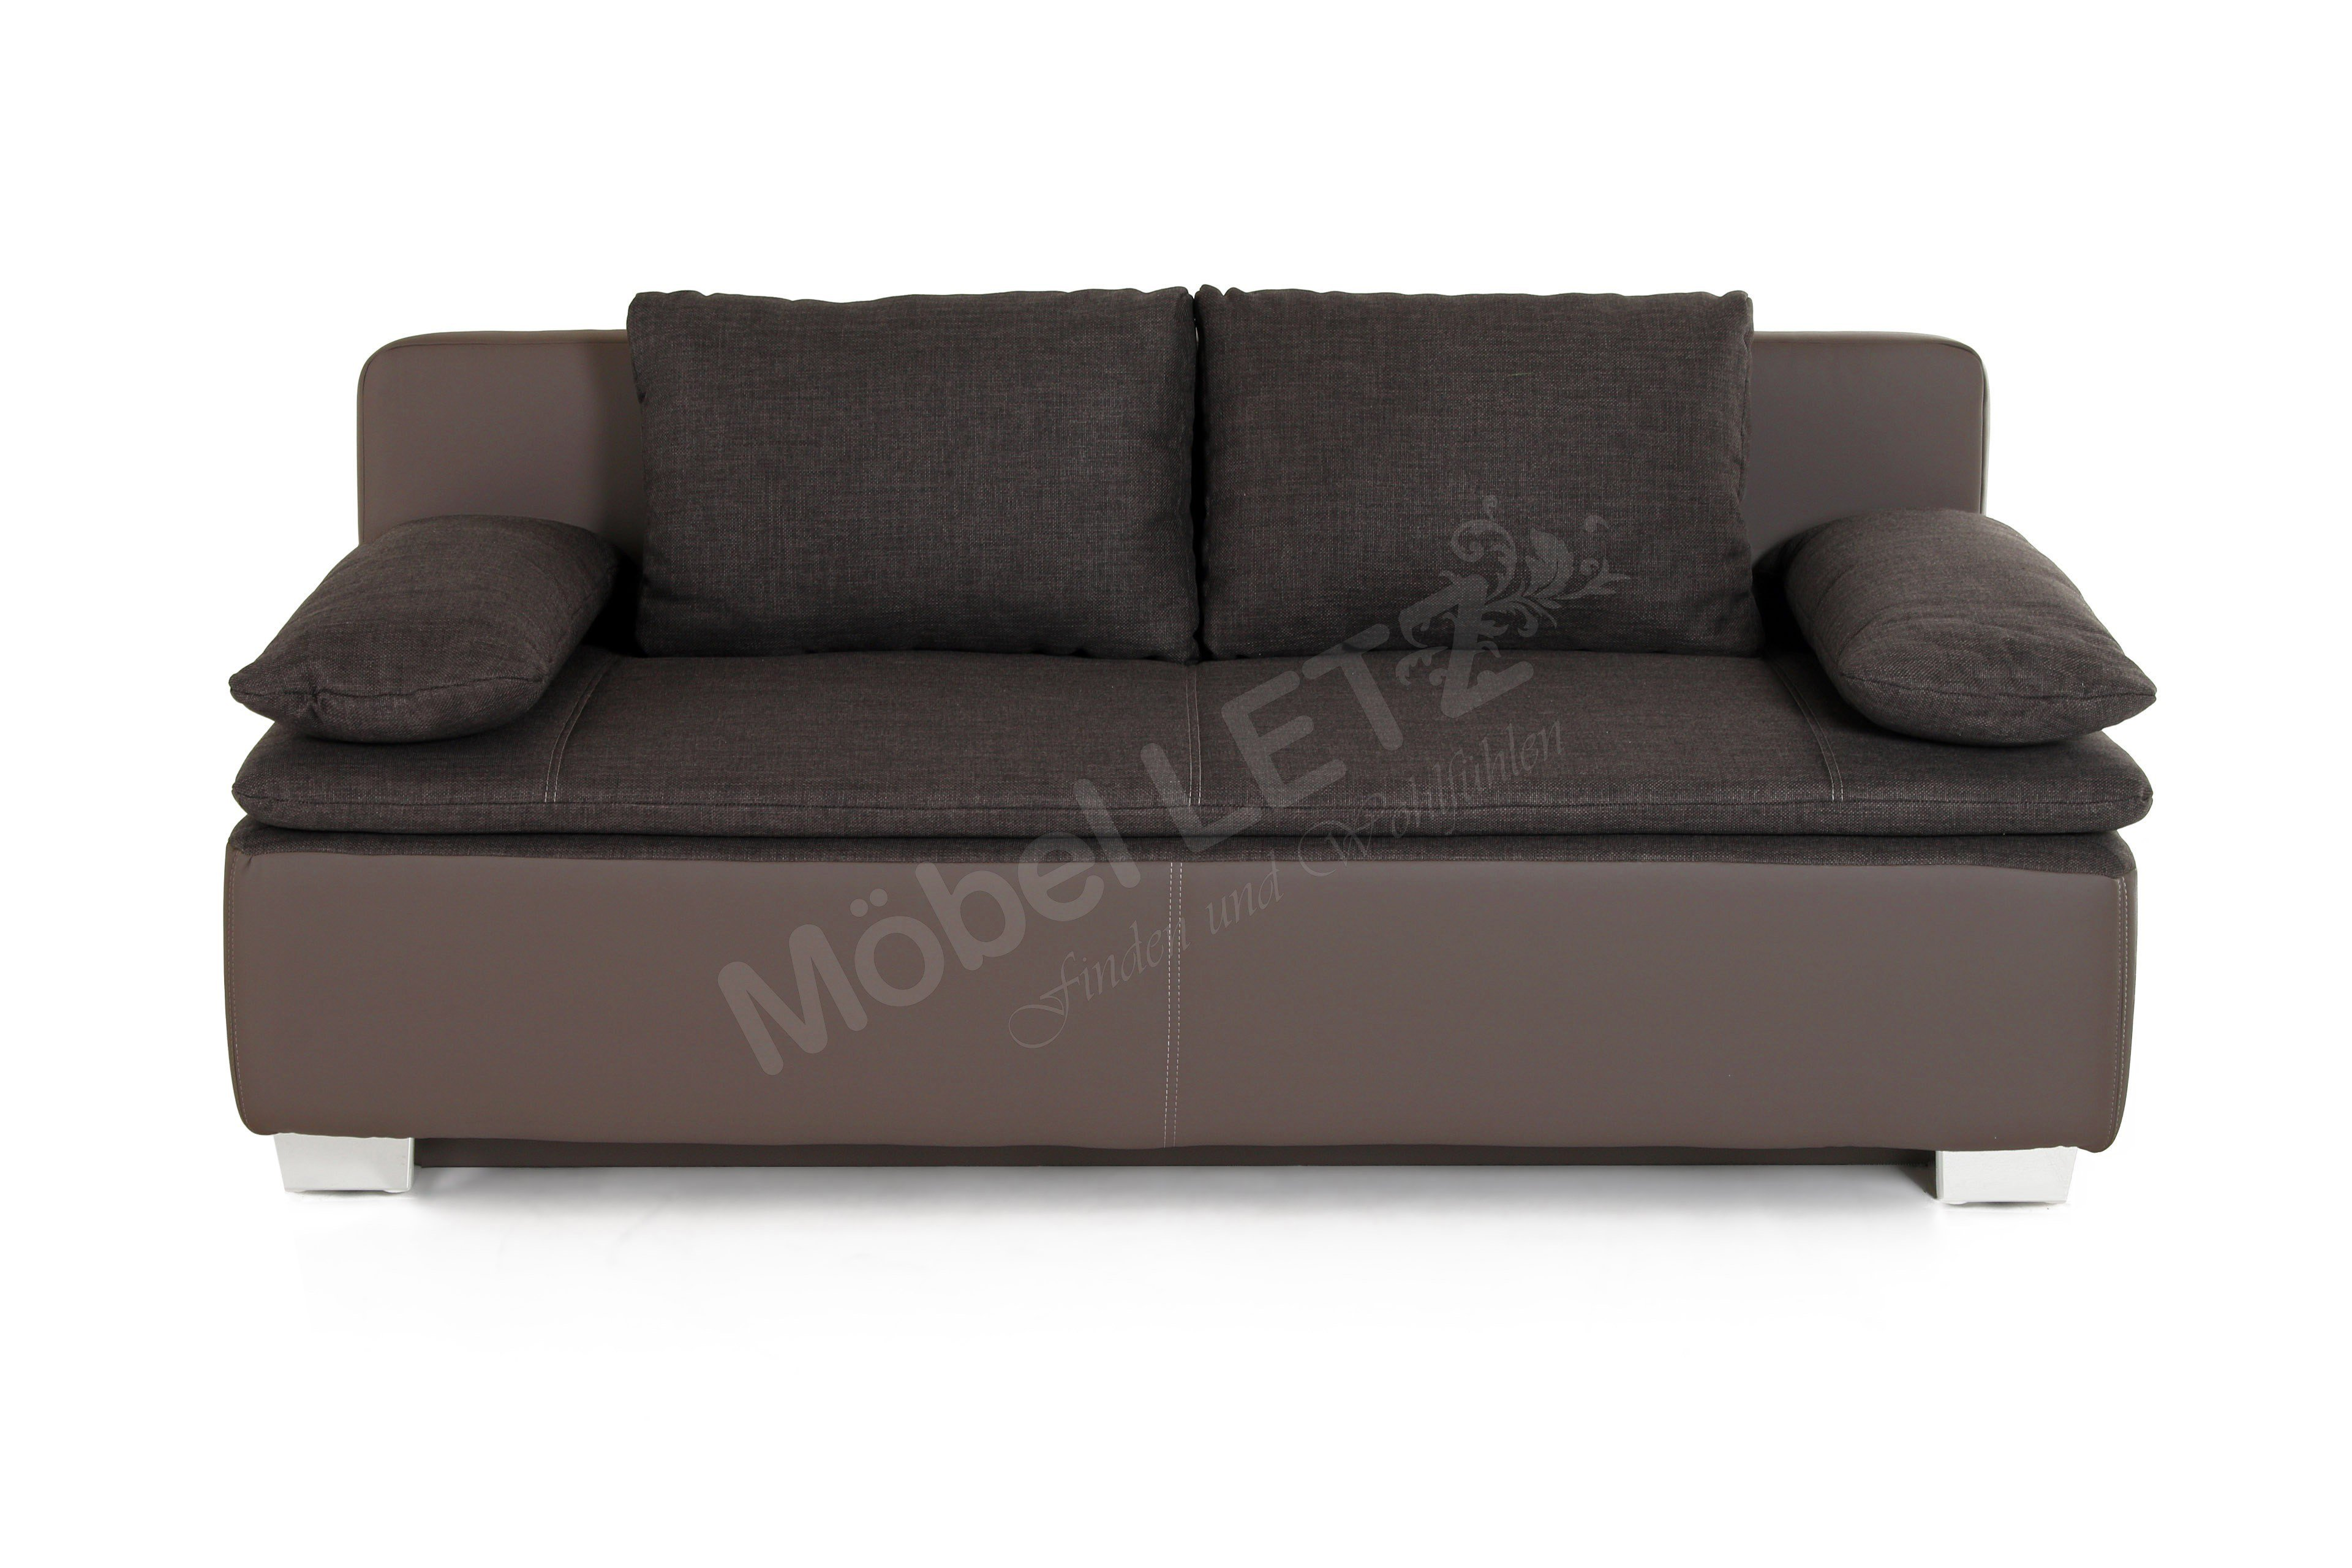 jockenh fer schlafsofa duett in braun m bel letz ihr online shop. Black Bedroom Furniture Sets. Home Design Ideas